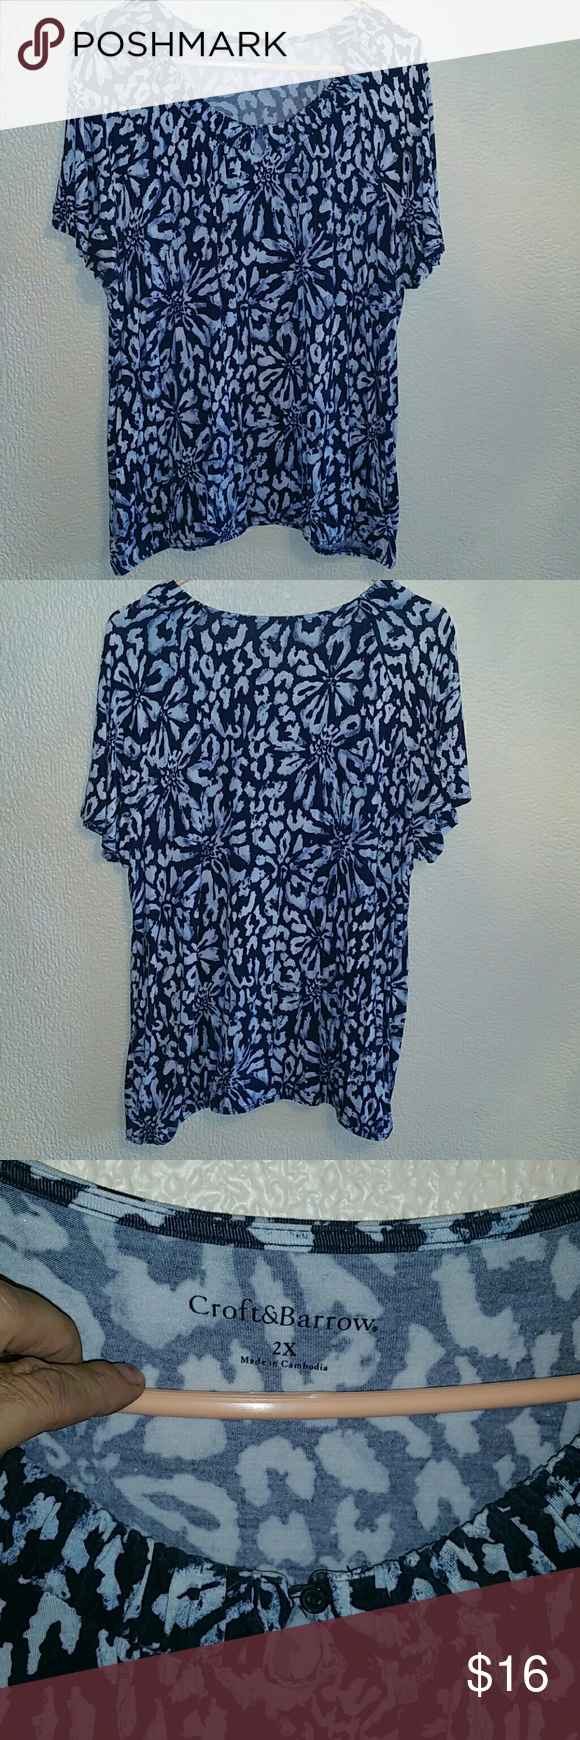 Croft n Borrow Shirt 95% rayon, 5% spandex. Light n soft shirt. Waist and neck are elastic,  arms are loose and flare. Can be worn with jeans or slacks. croft & barrow Tops Tees - Short Sleeve